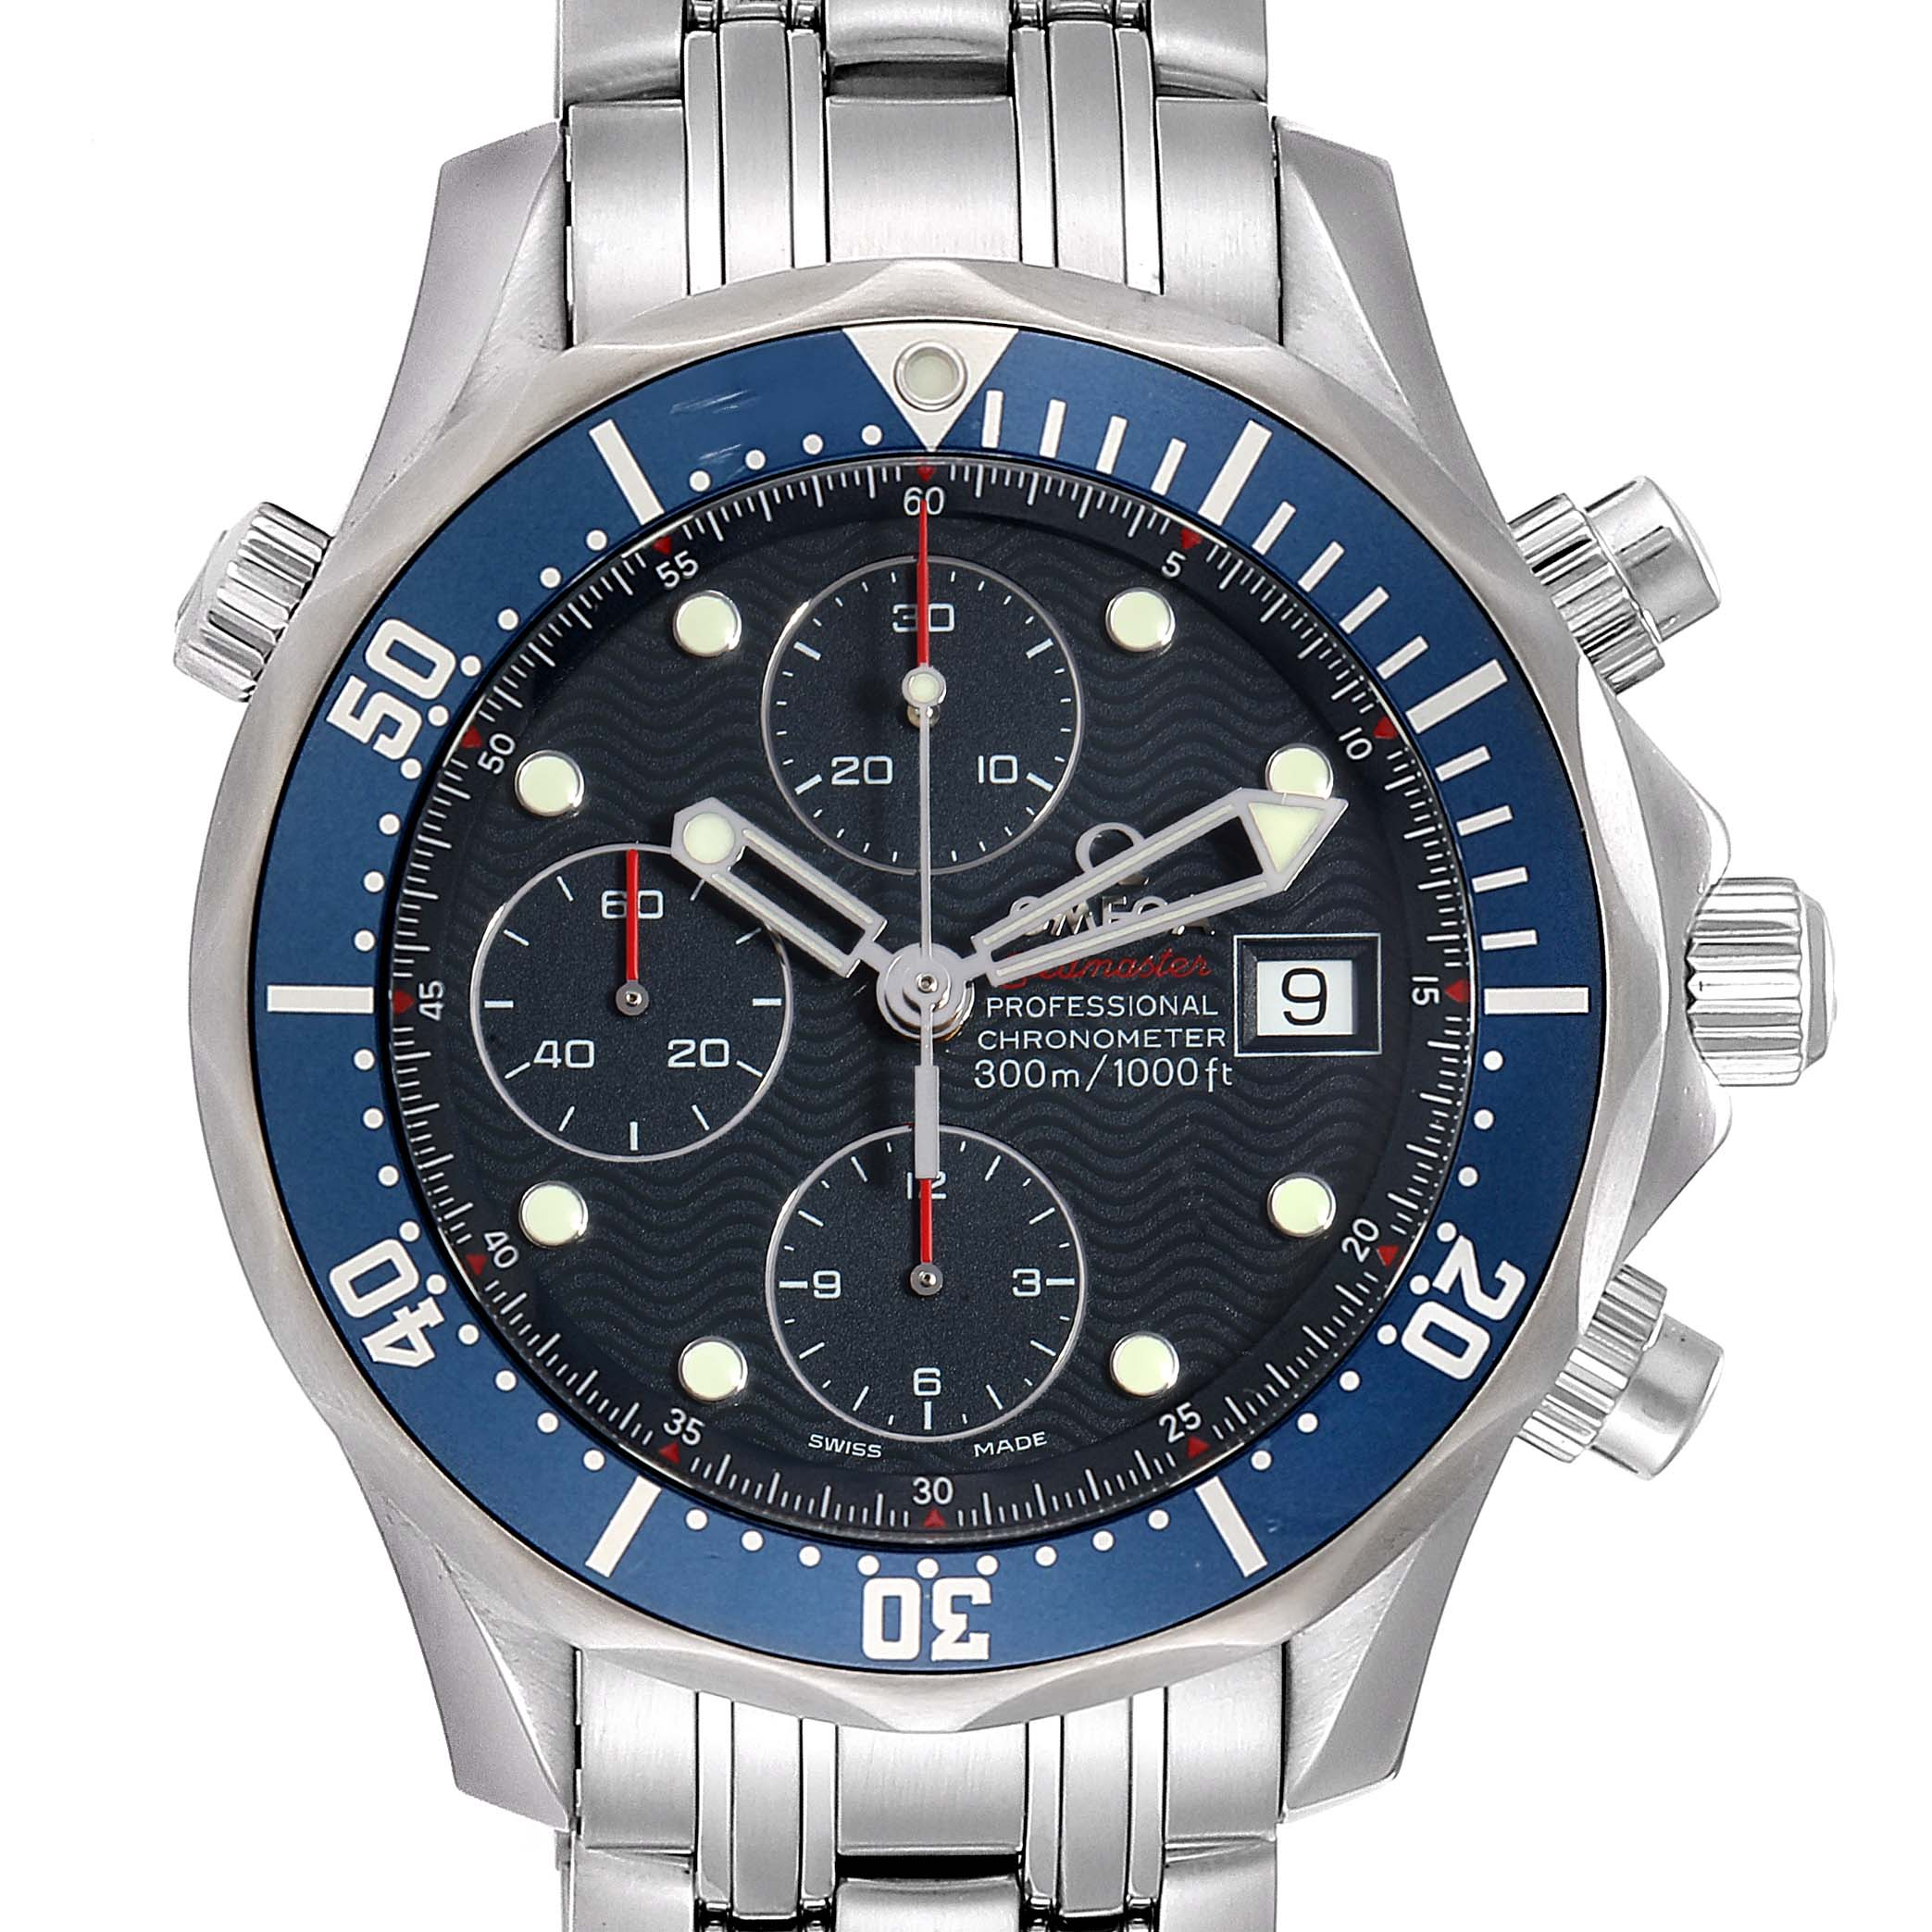 Omega Seamaster 300m Chronograph Automatic 41.5 mm Watch 2225.80.00